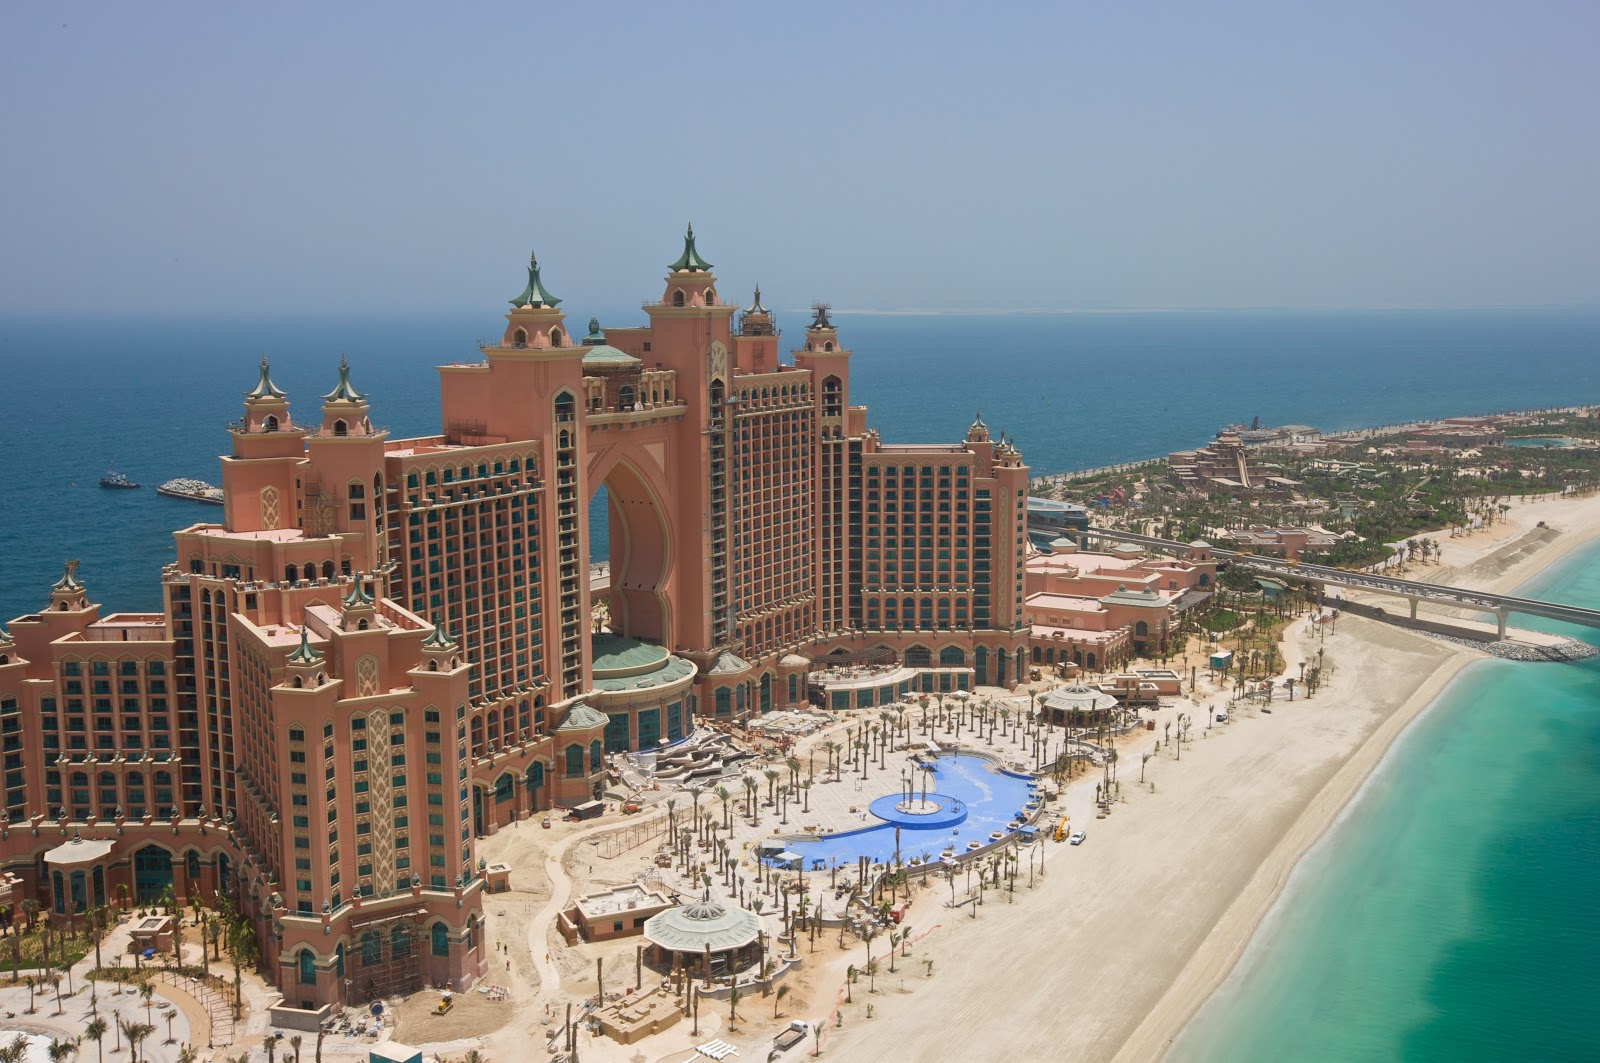 Travel Trip Journey : Palm Jumeirah Dubai